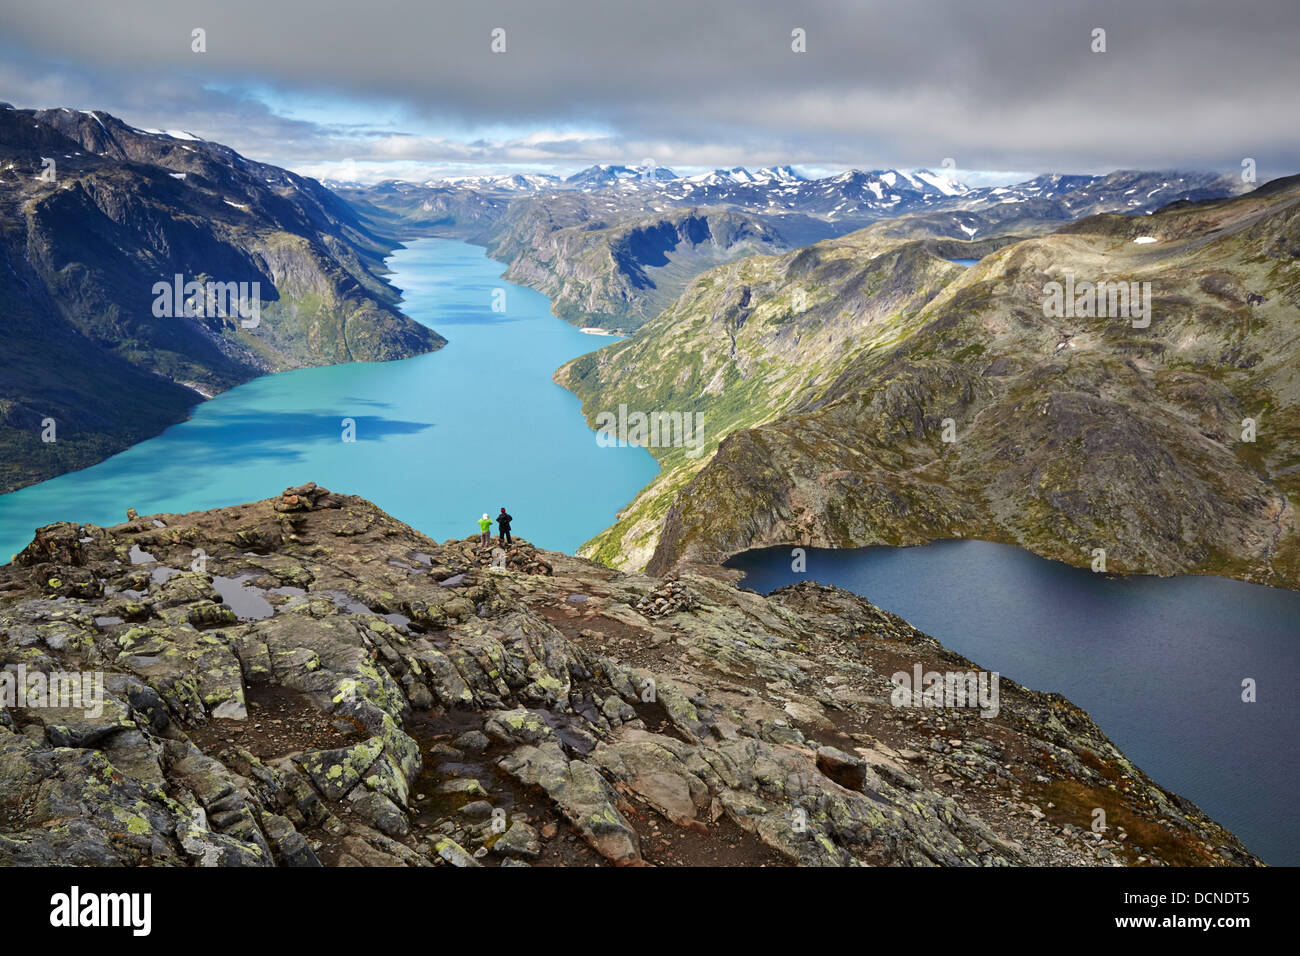 Two walkers look out over Lakes Gjende and Bessvatnet from the descent of the Besseggen Ridge Jotunheimen National - Stock Image